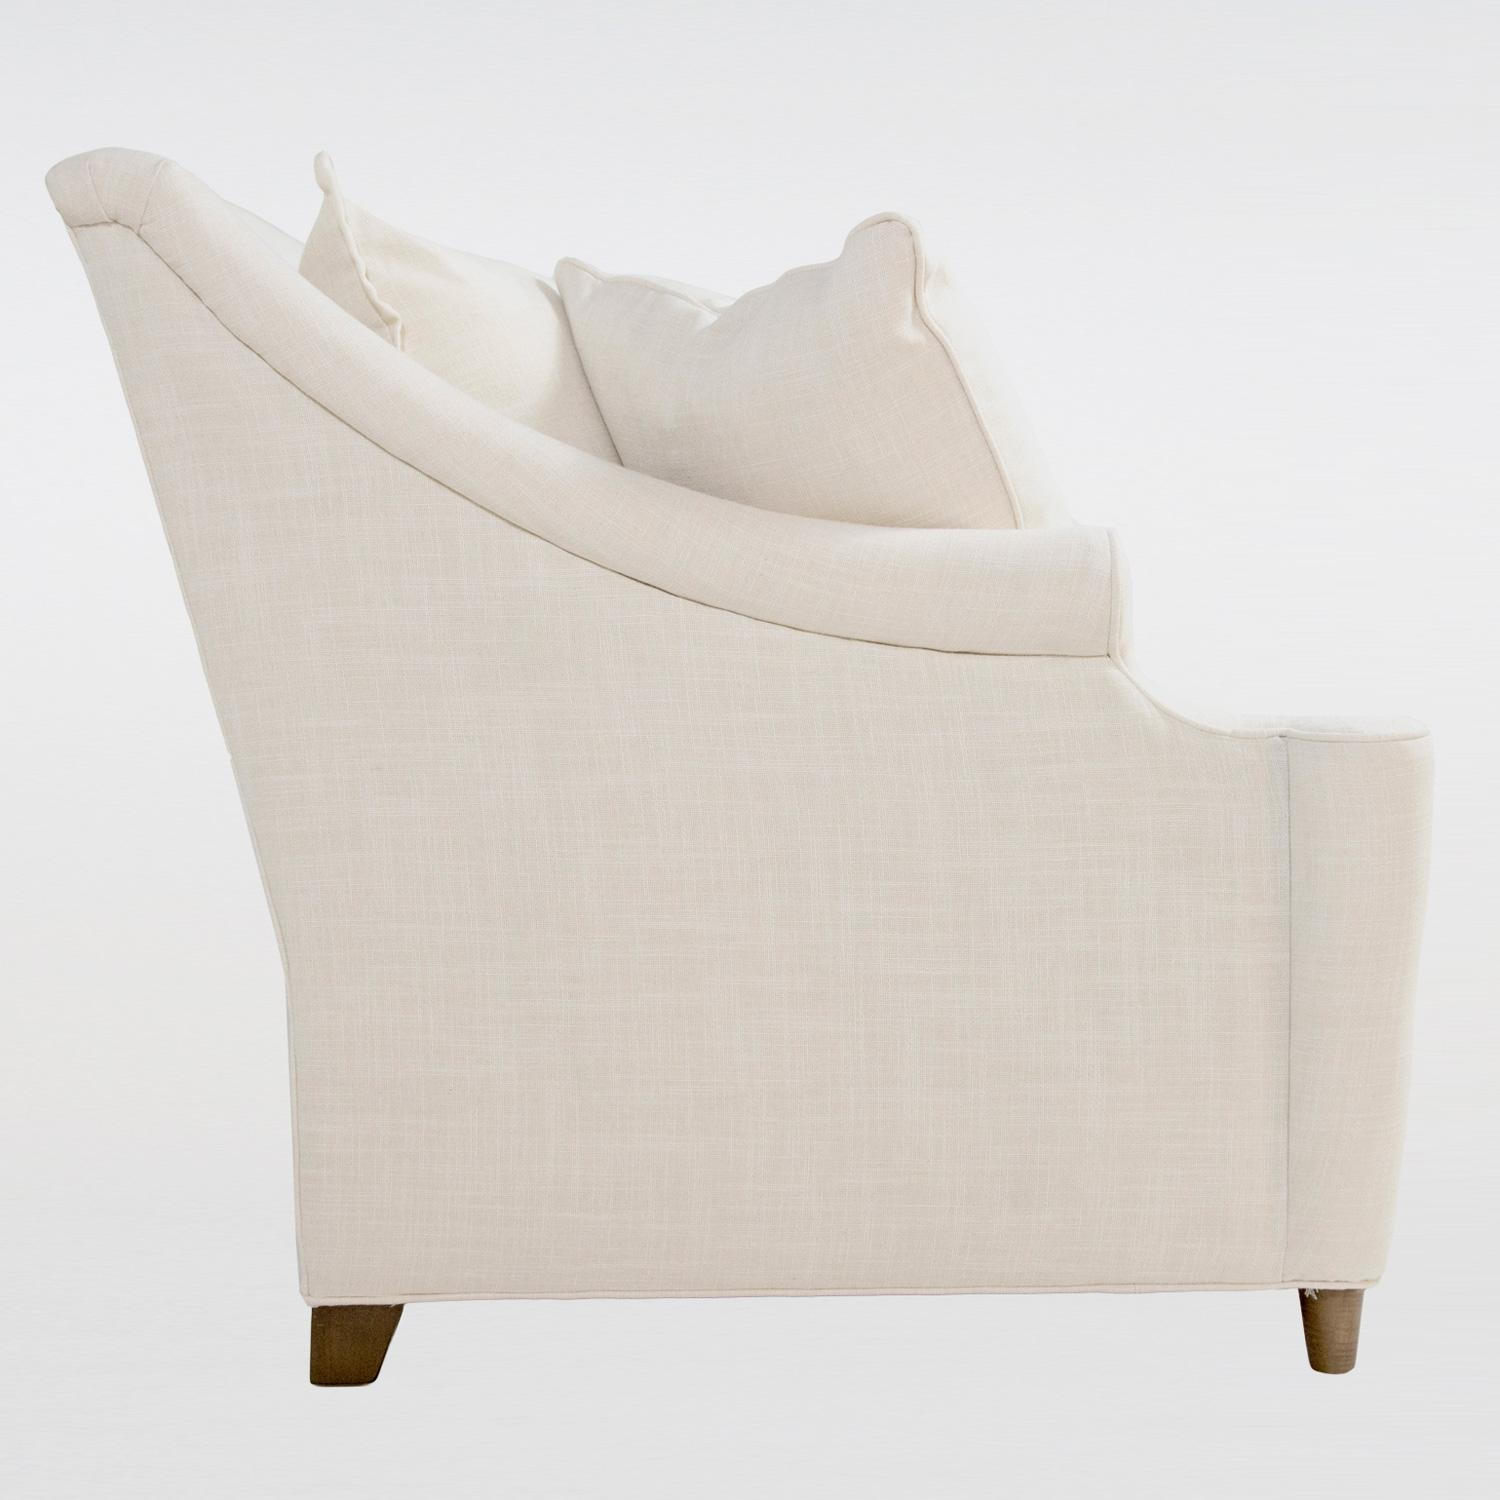 Gabby Furniture Theo Bench Cushion Sofa Intended For Bench Cushion Sofas (View 11 of 20)